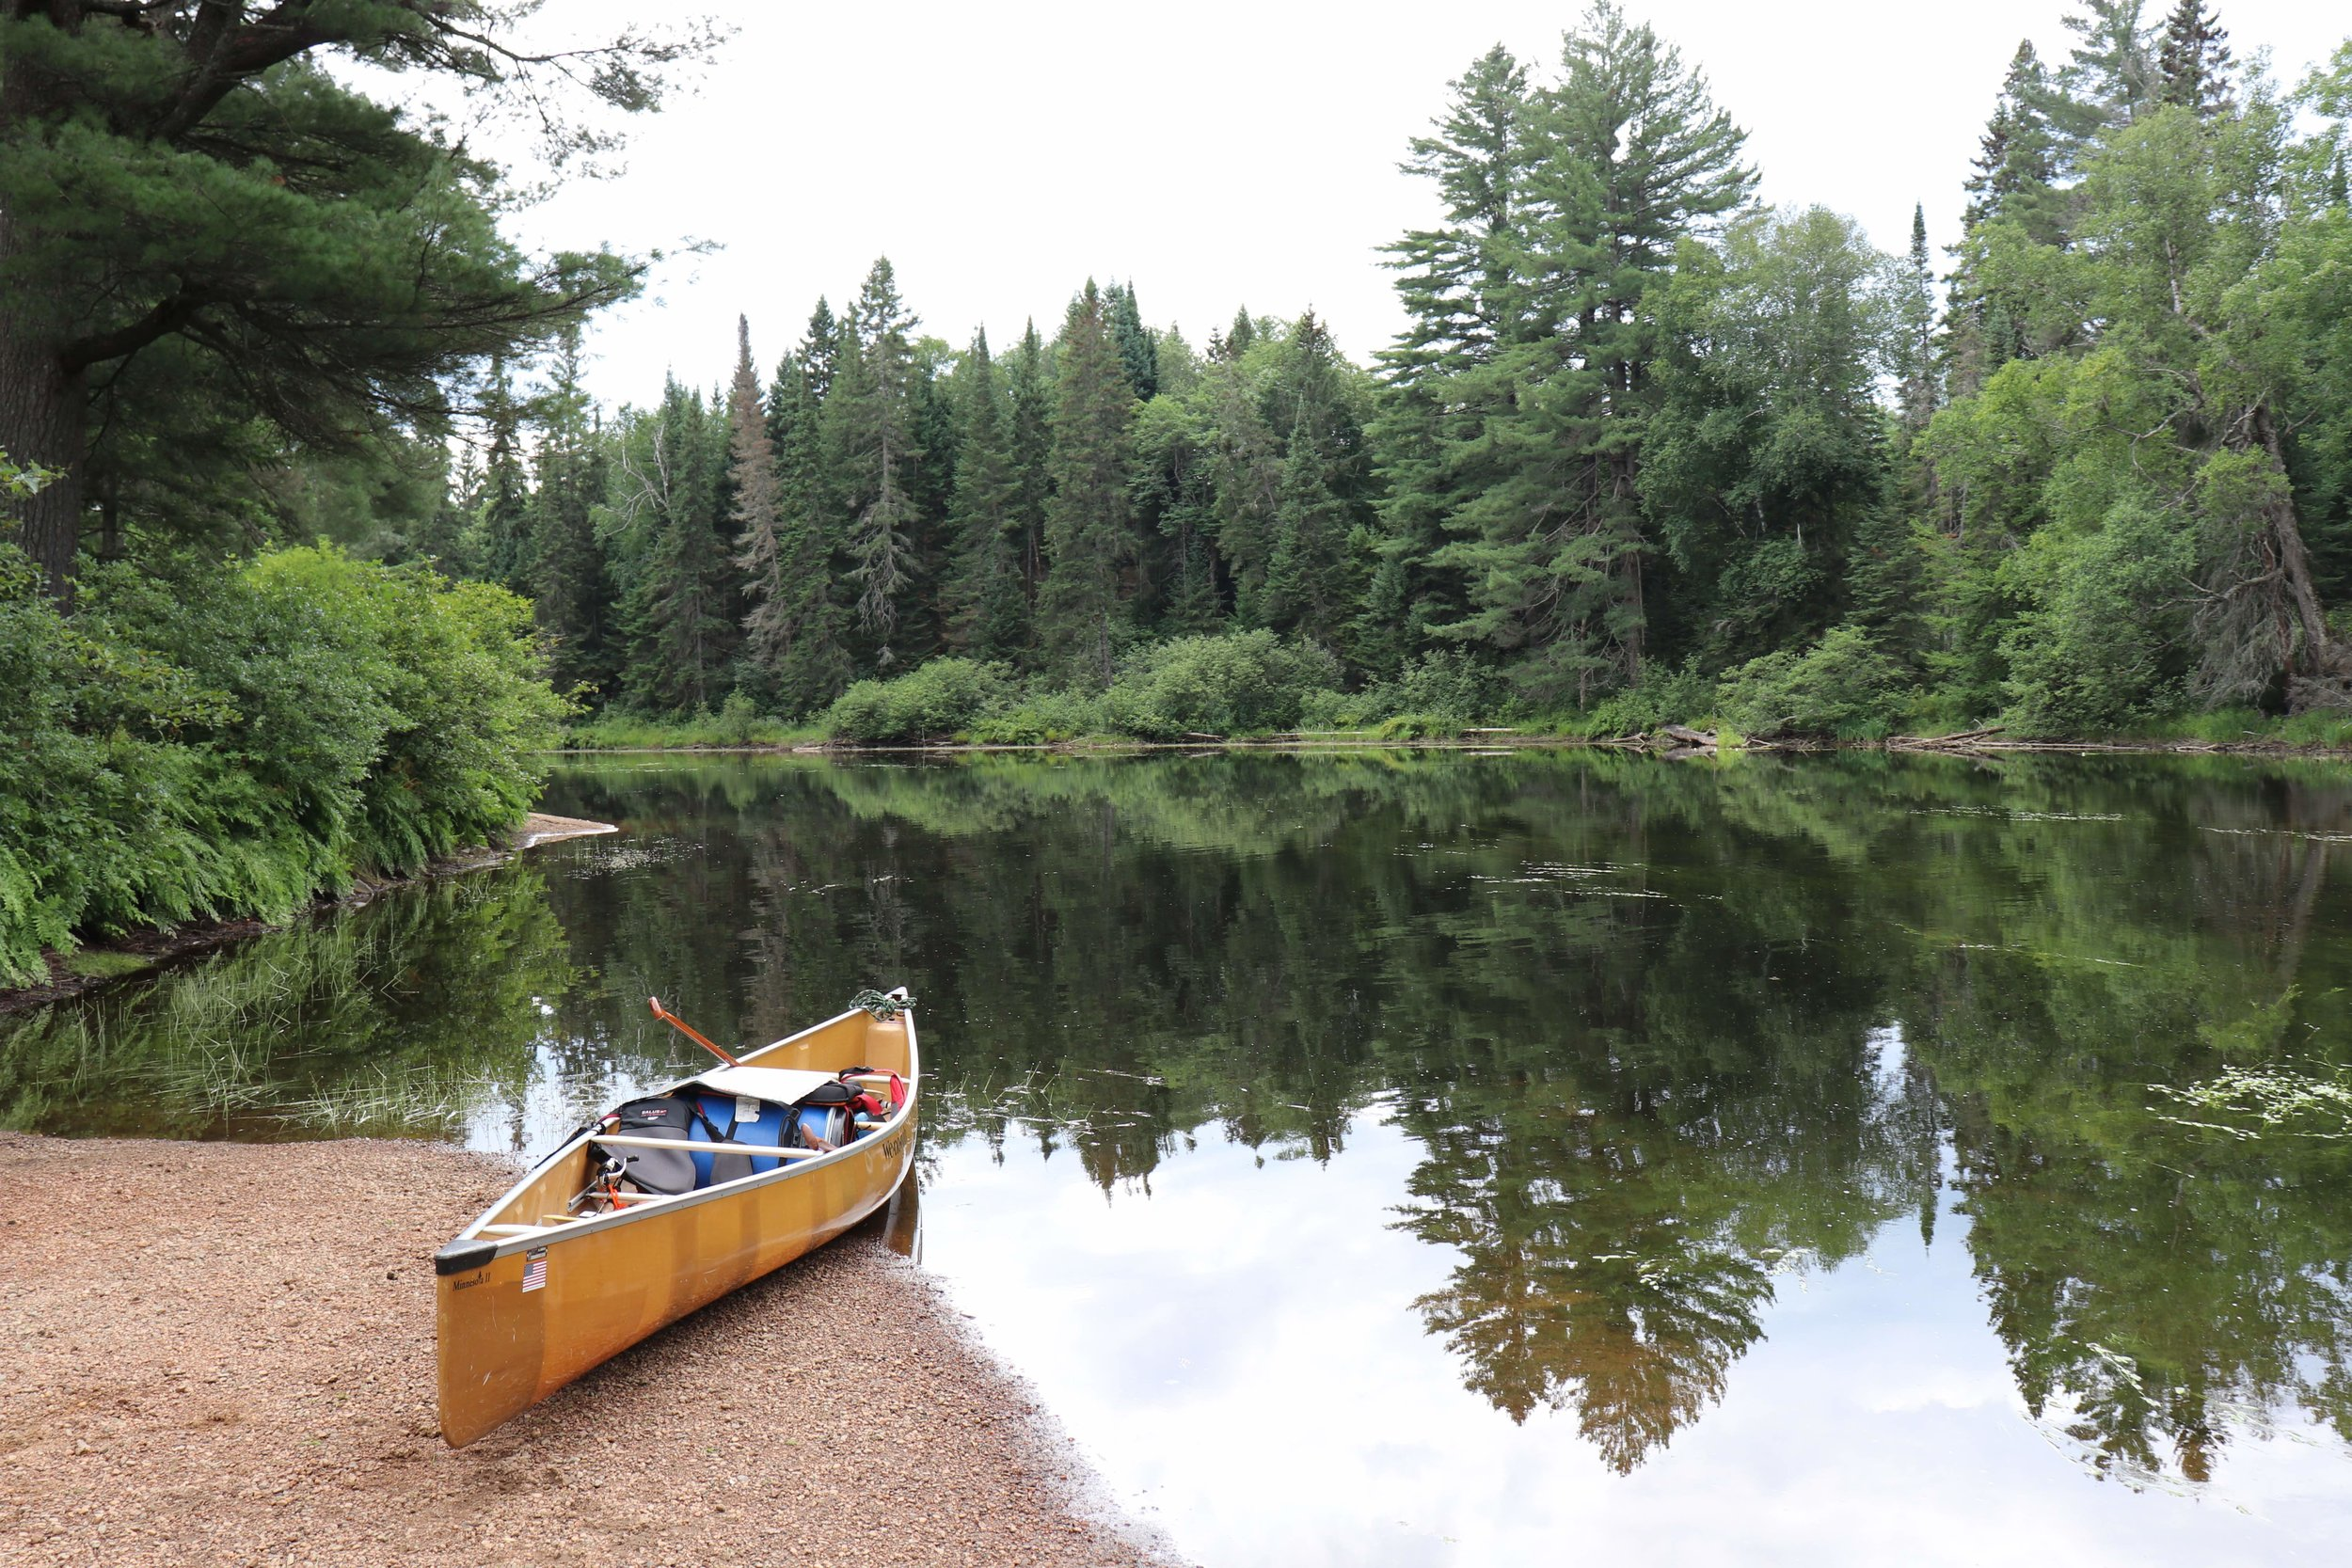 Arriving at the Oxtongue River just after the Tea Lake Dam portage